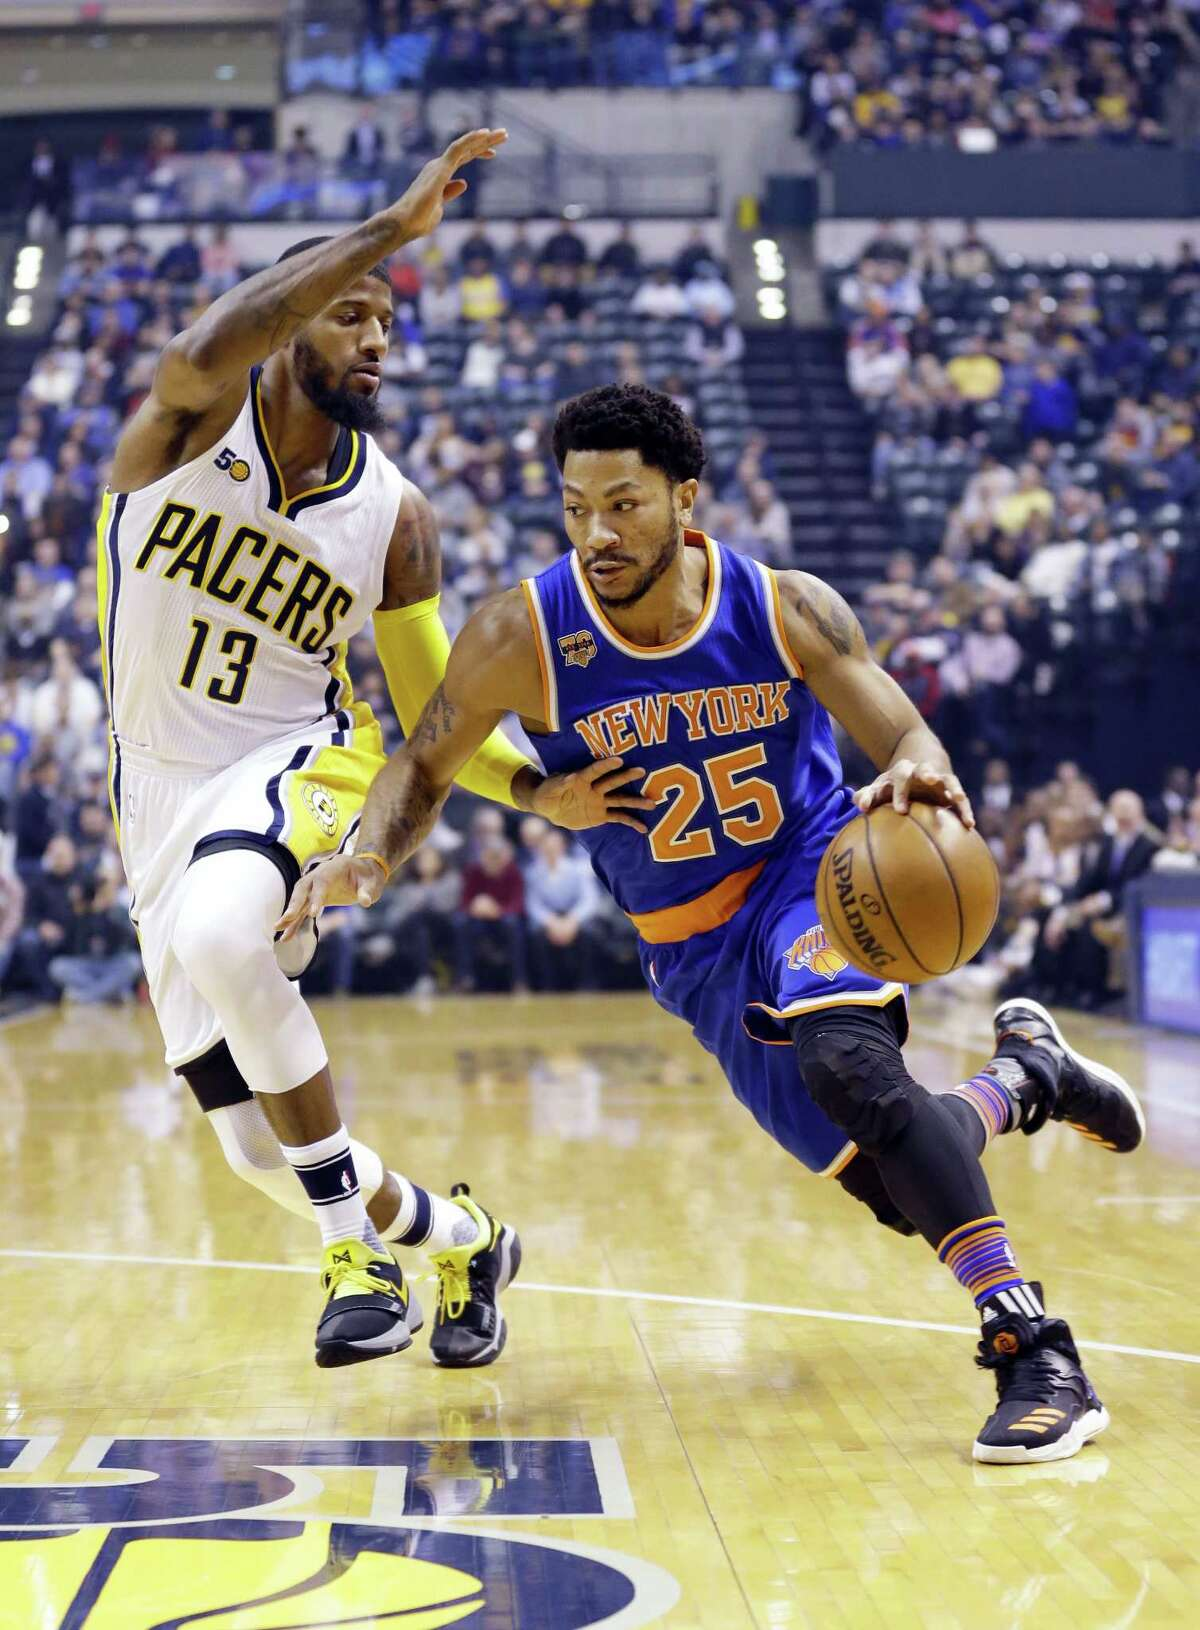 New York Knicks guard Derrick Rose (25) drives on Indiana Pacers forward Paul George (13) during the first half of an NBA basketball game in Indianapolis on Jan. 23, 2017.